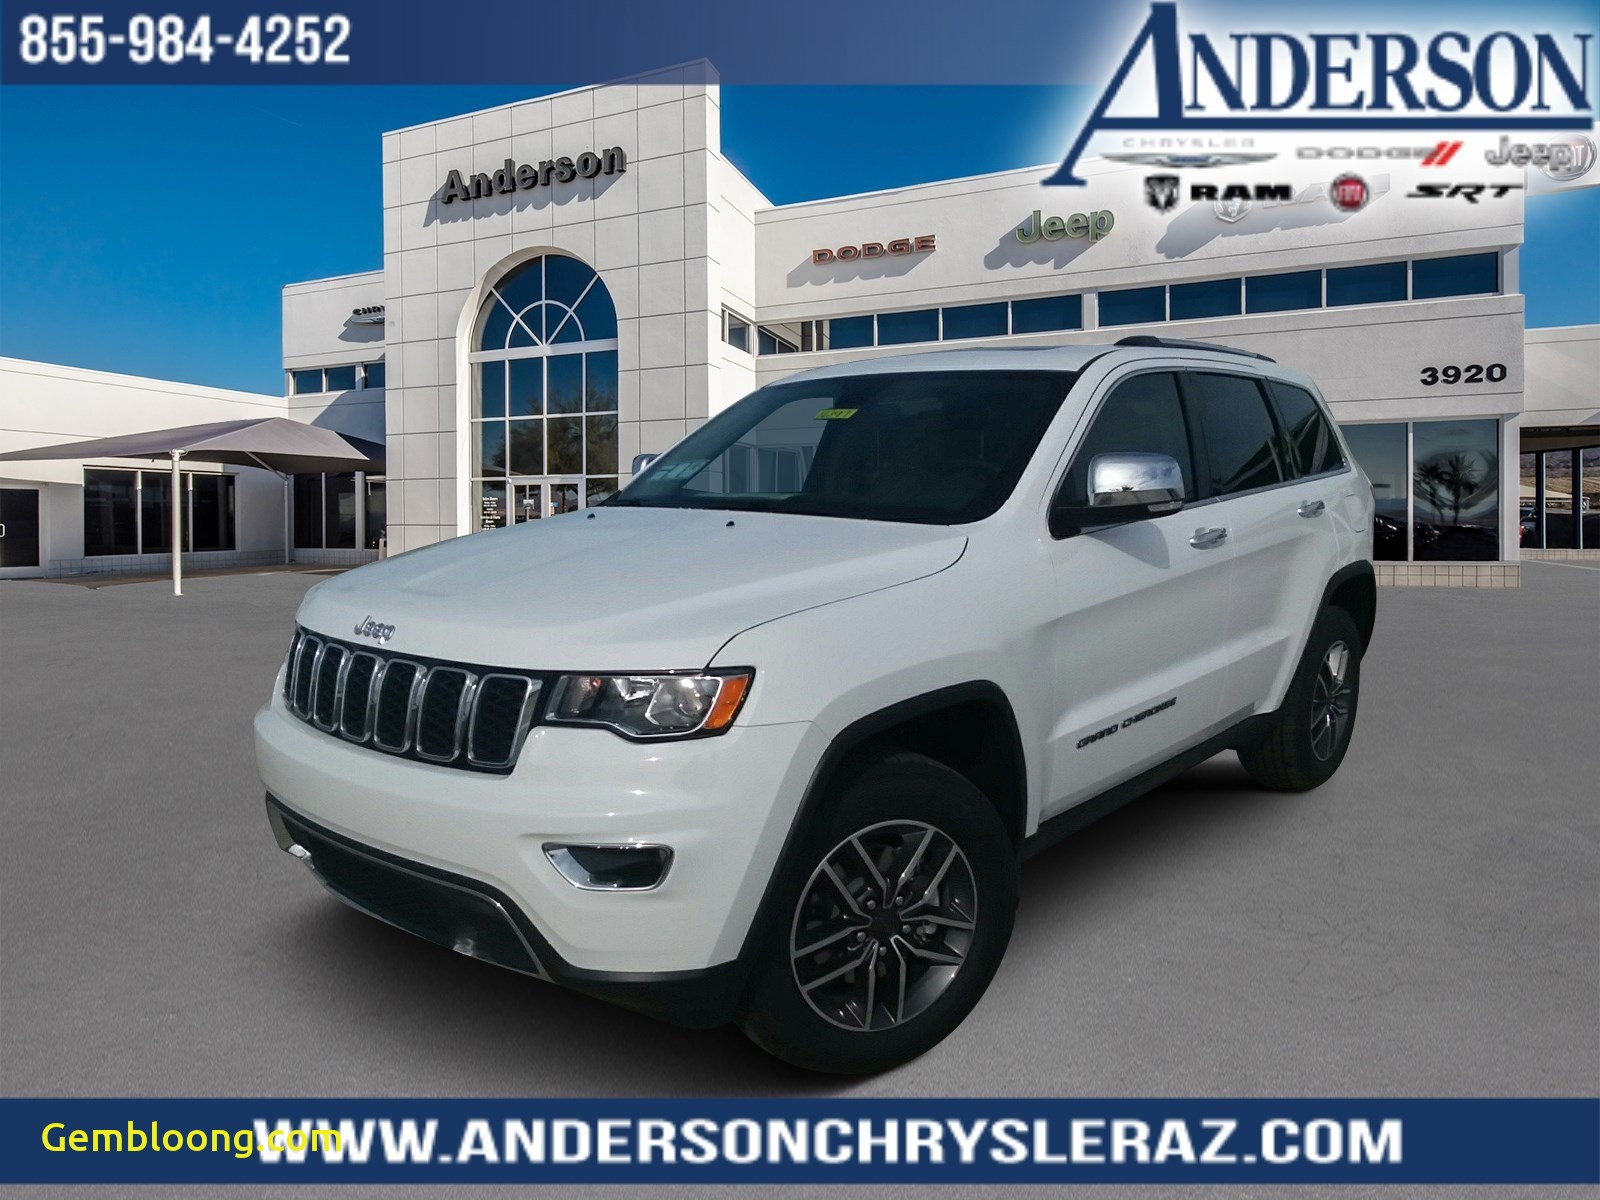 2009 Jeep Grand Cherokee Awesome New 2020 Jeep Grand Cherokee Limited with Navigation & 4wd